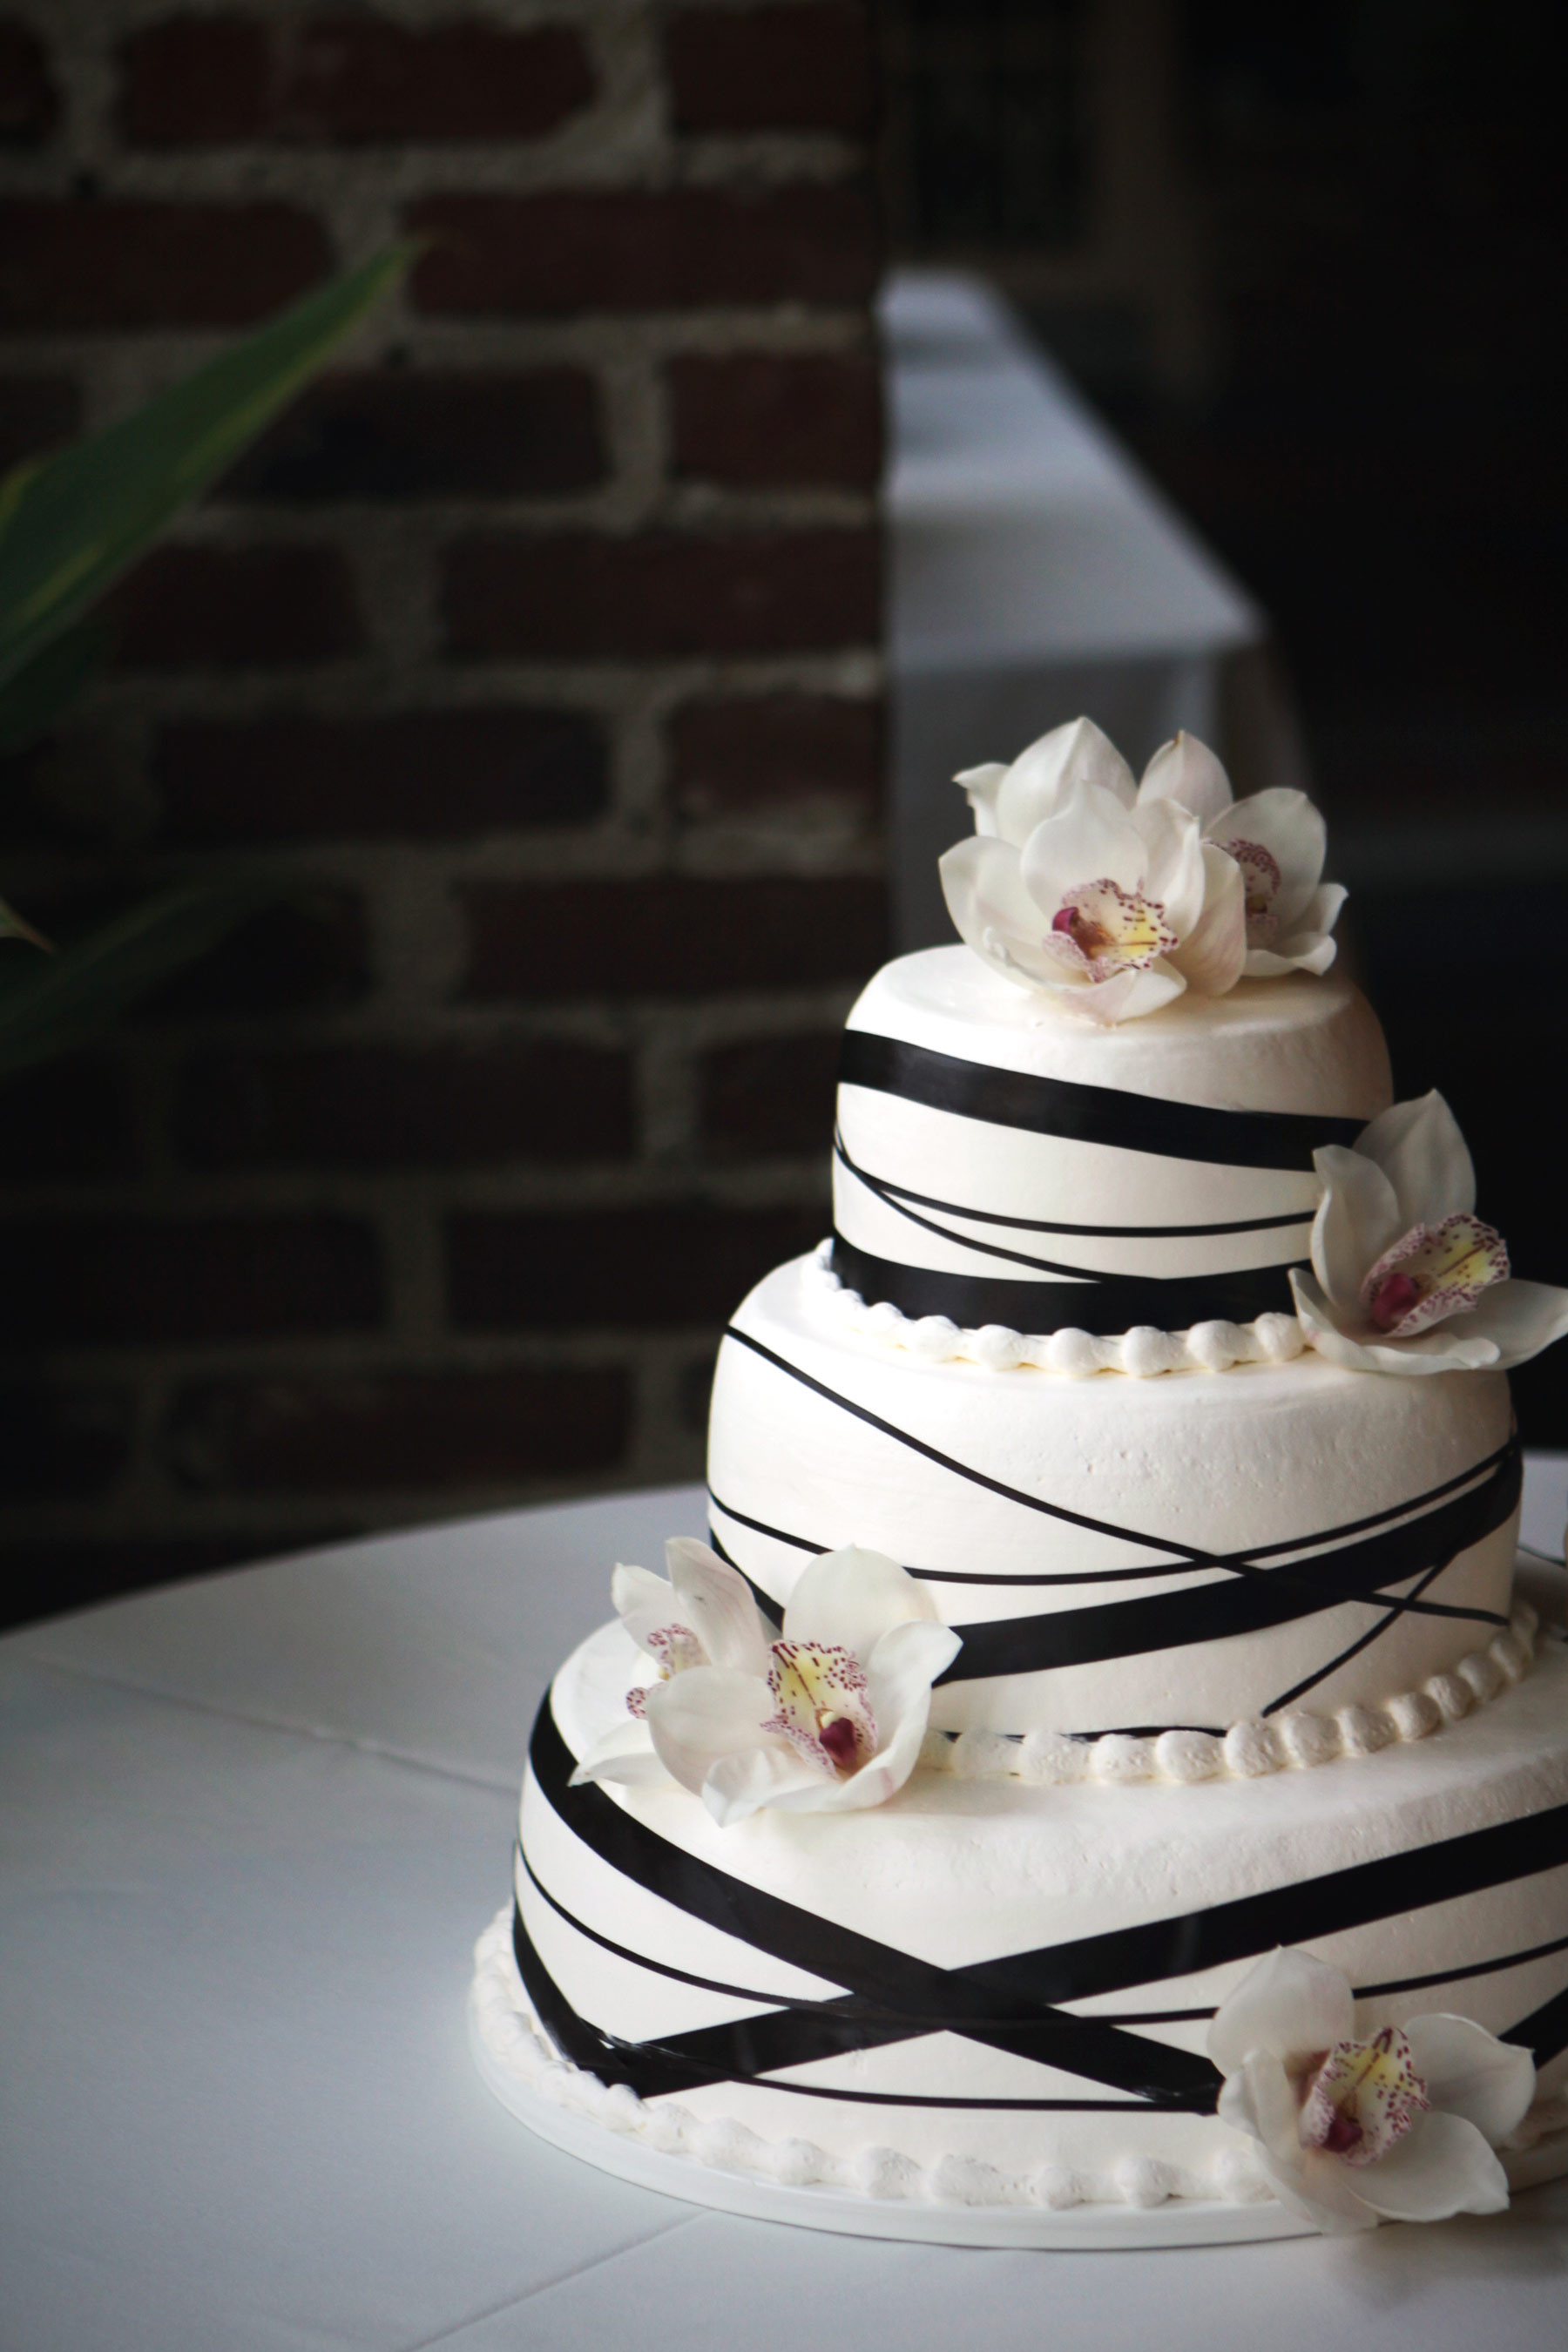 Wedding Cakes Ribbon  beautiful Wedding cake Archives Patty s Cakes and